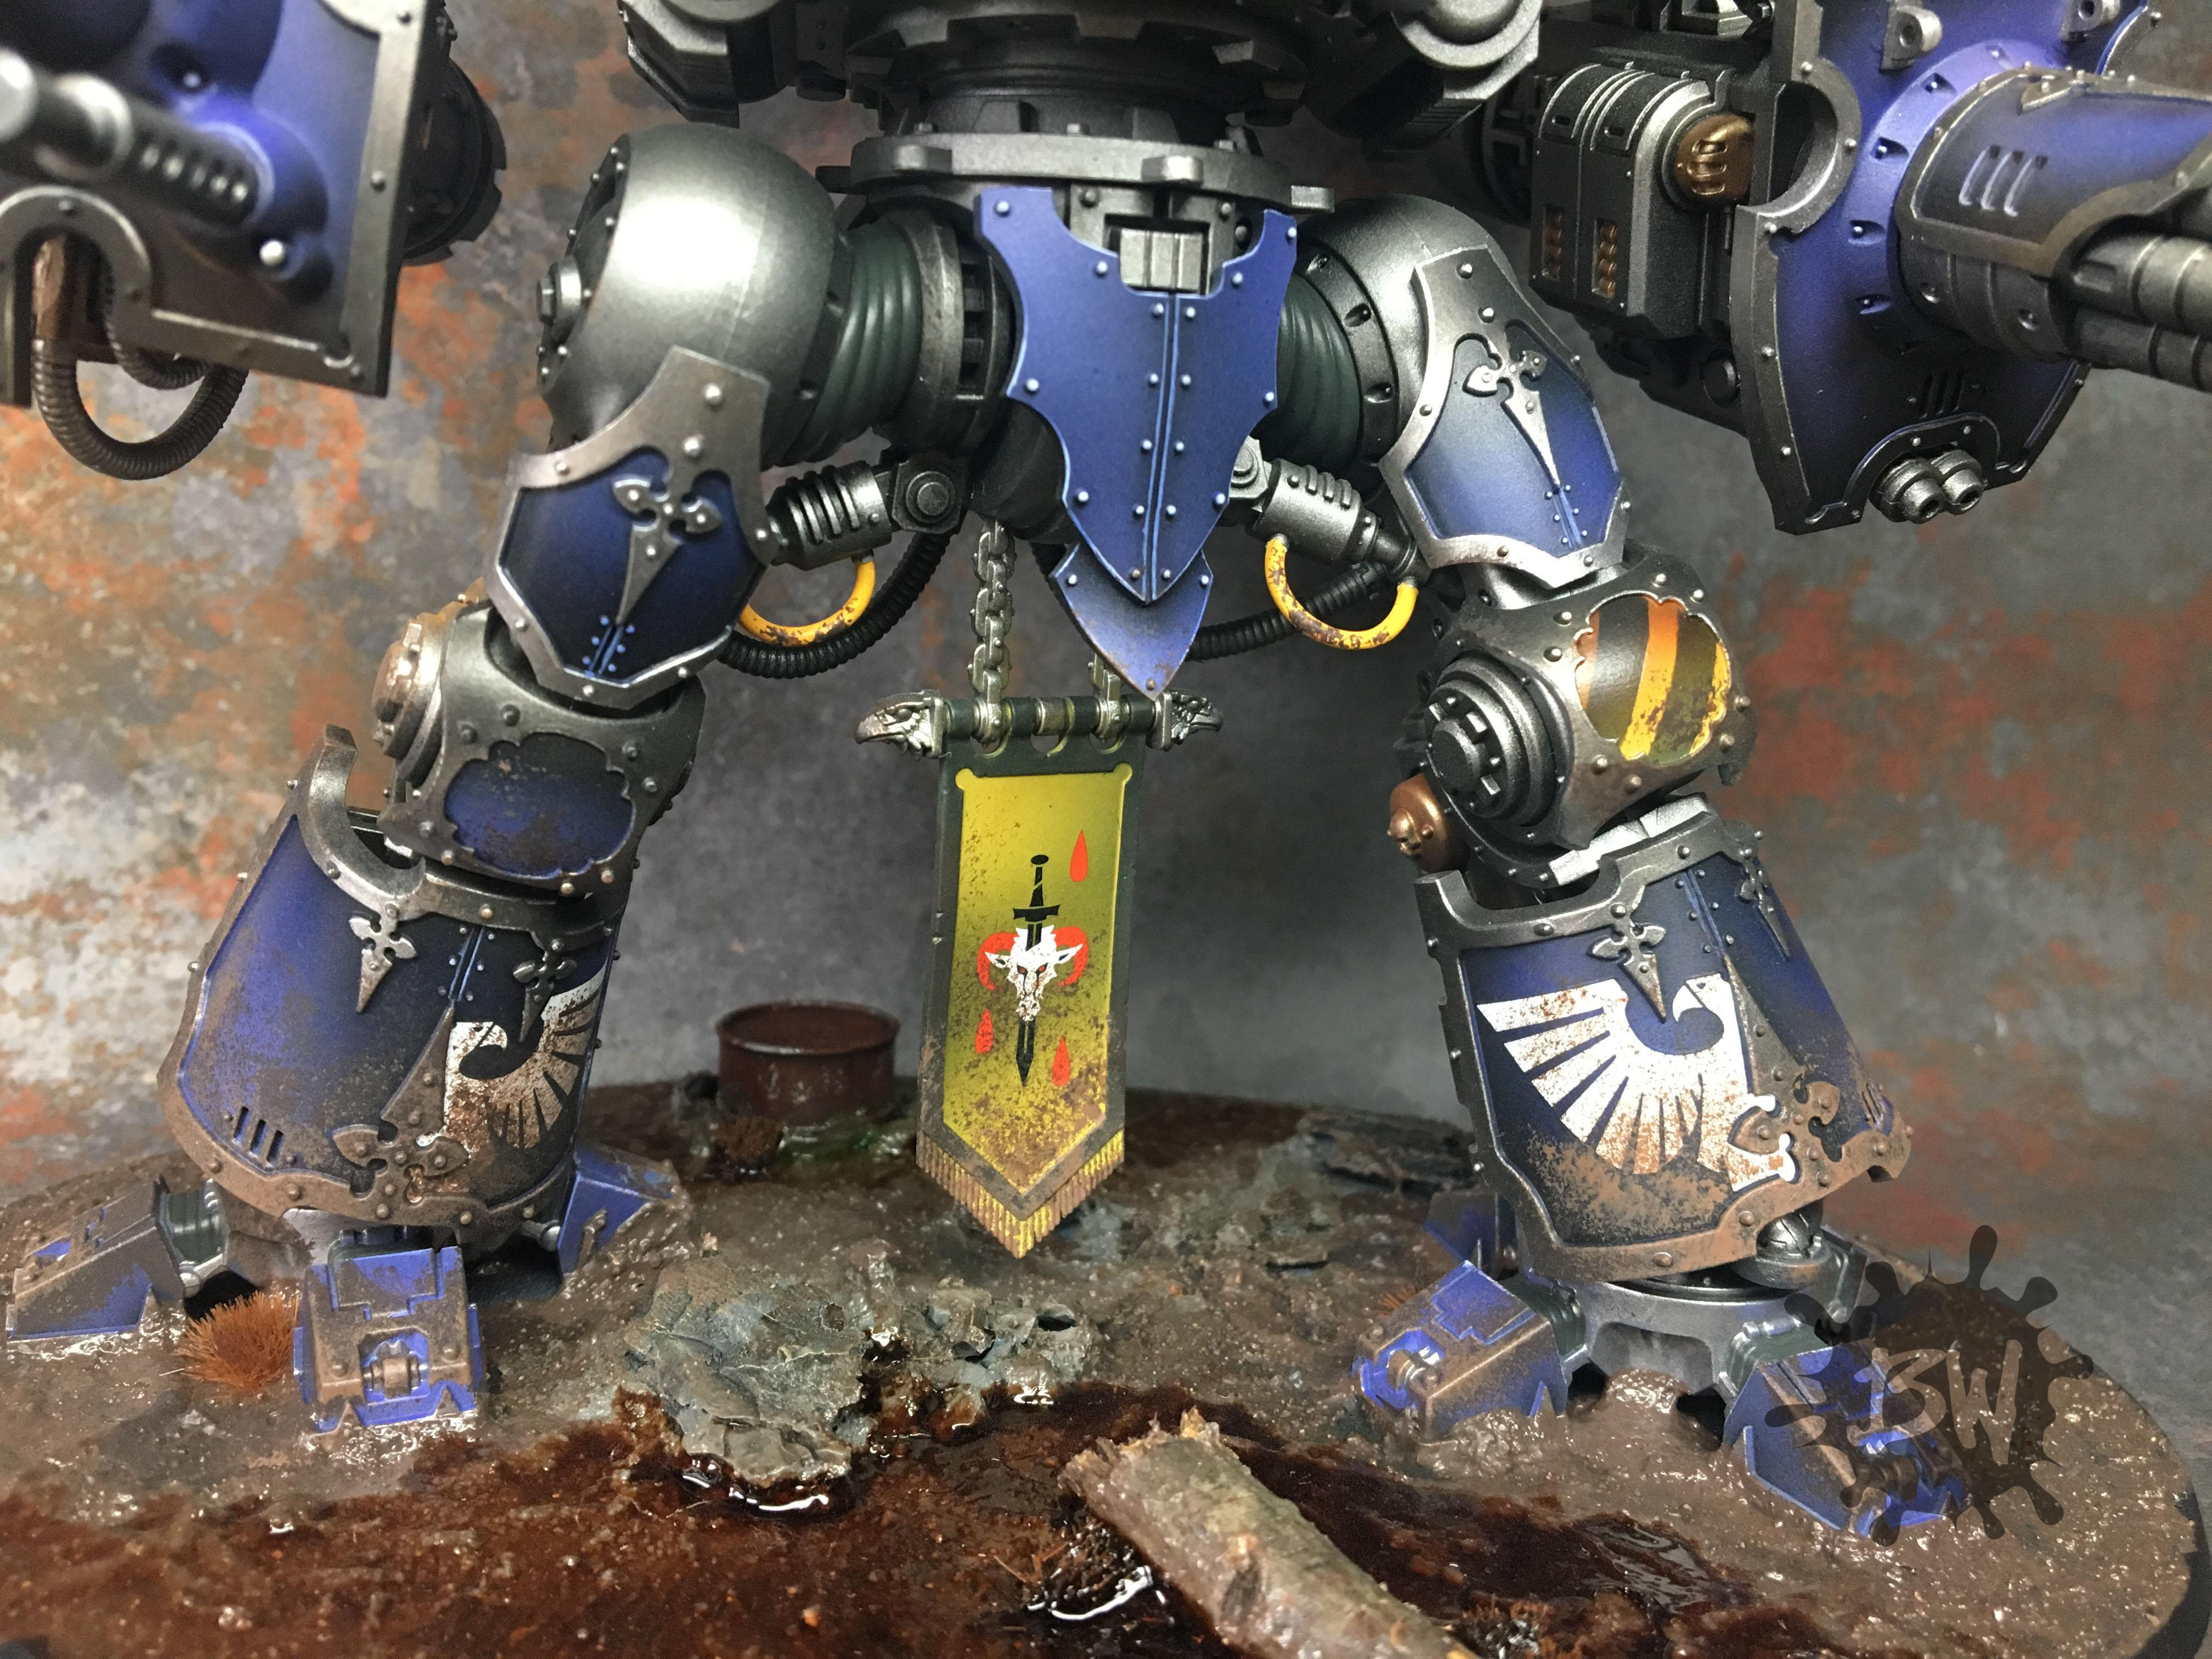 Bw, Commission, Imperial Knight Crusader, Imperium, Painting, Warhammer 40,000, Warhammer Fantasy